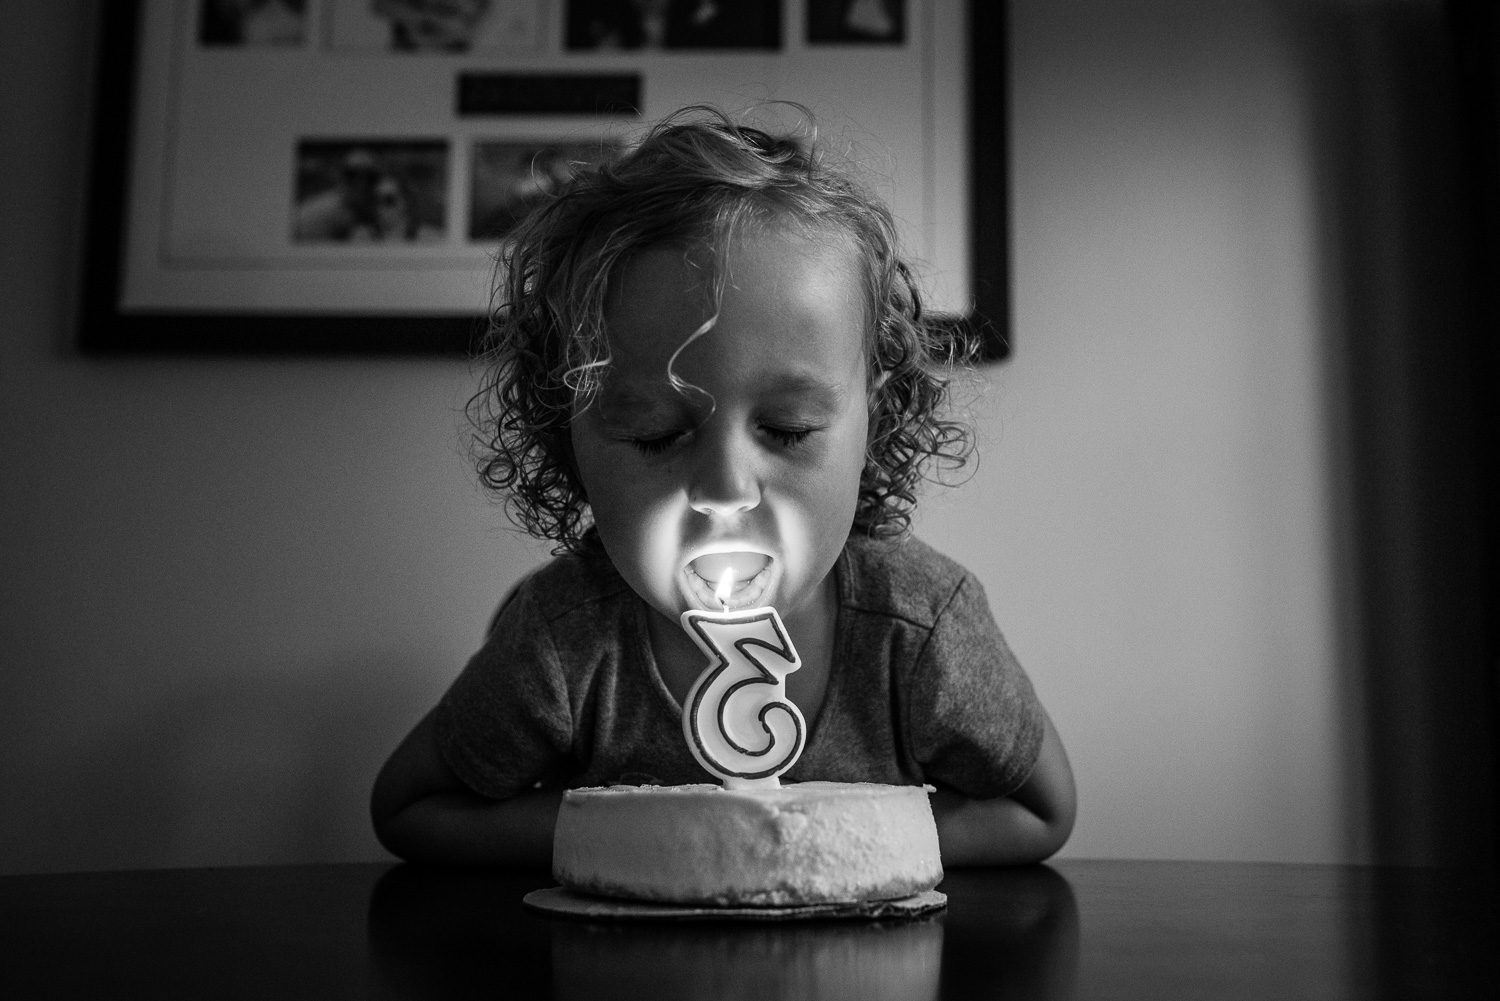 Toddler girl with curly hair at a table blowing out a number three candle on a small white cheesecake with photographs on the wall in behind her.